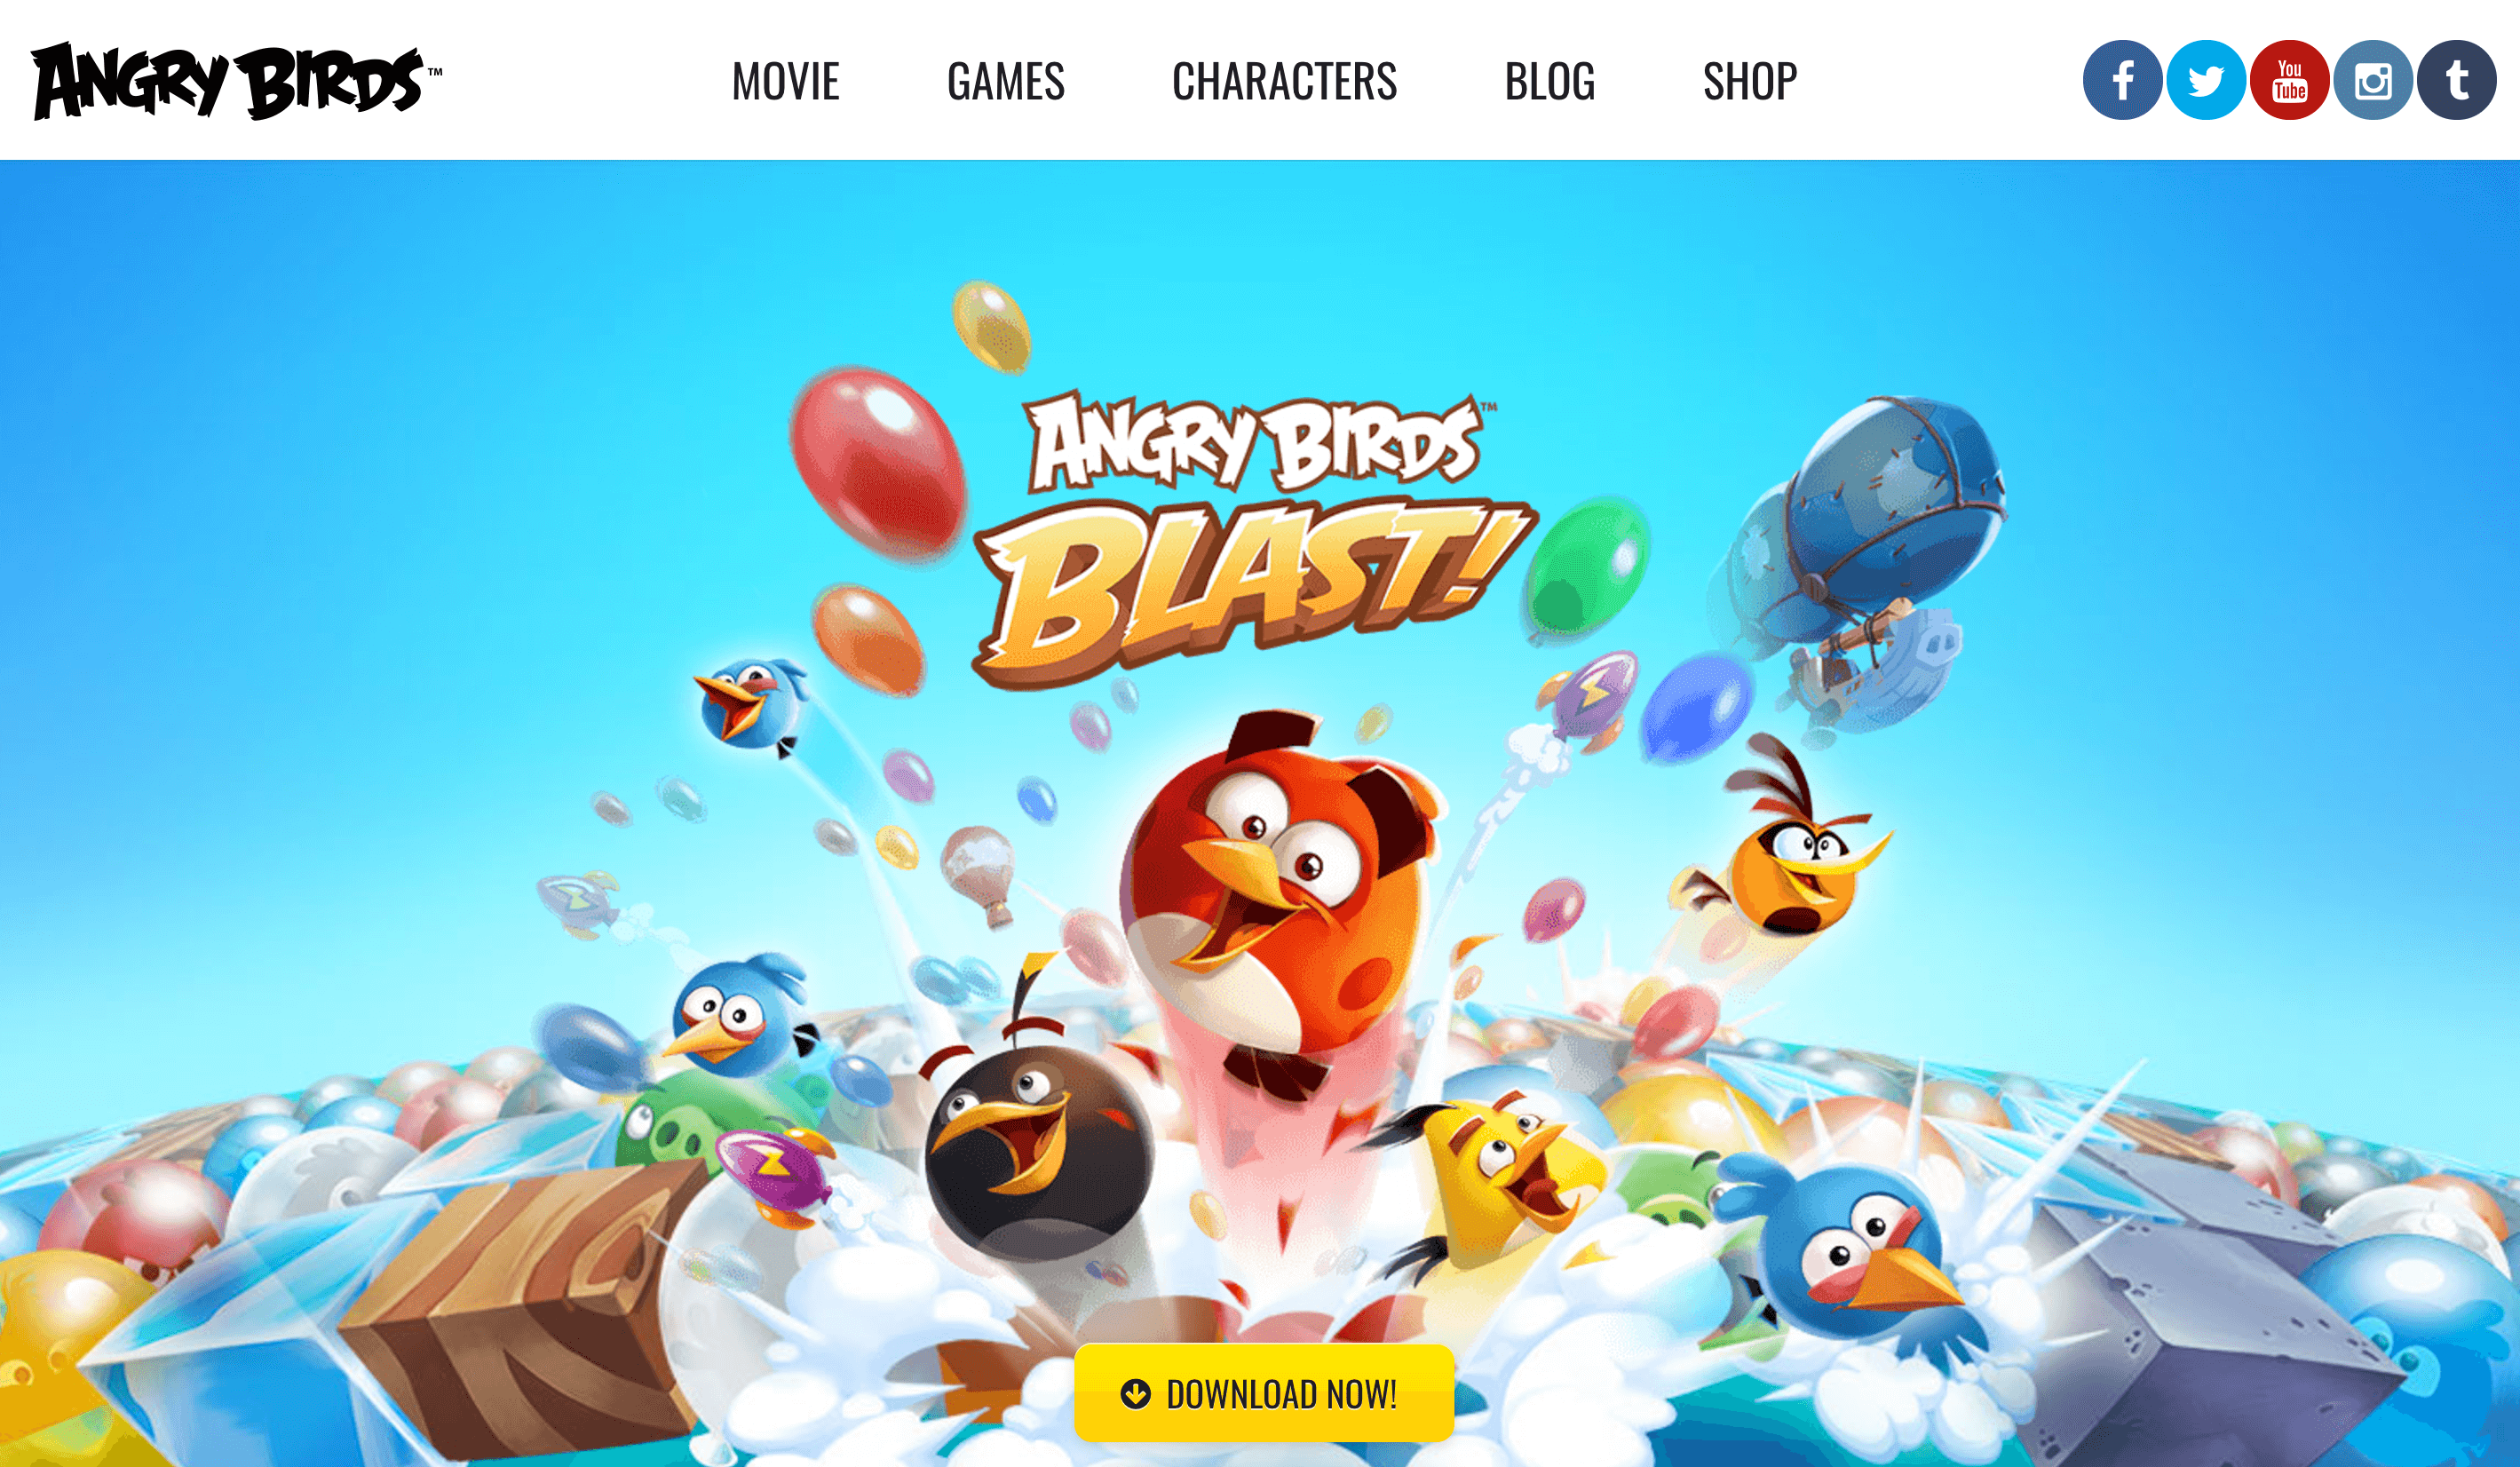 The Angry Birds home page.